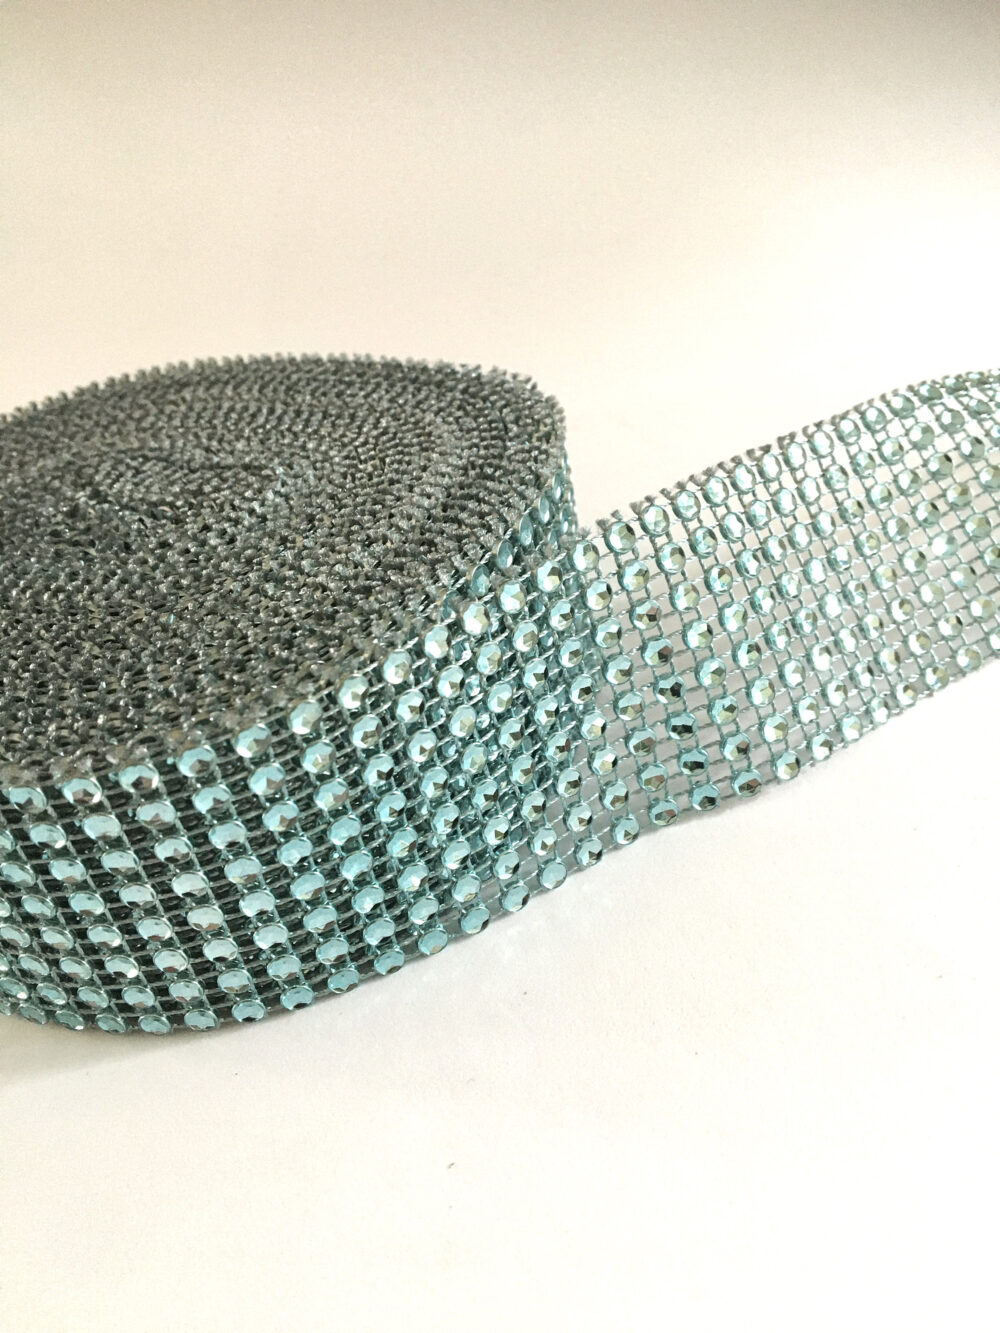 Diamond Mesh Ribbon, Rhinestone Ribbon, Jewel Ribbon, Mesh By The Yard, Wedding Mesh, Wedding Cake Mesh, Scrapbooking Mesh, Rhinestone Mesh, 73